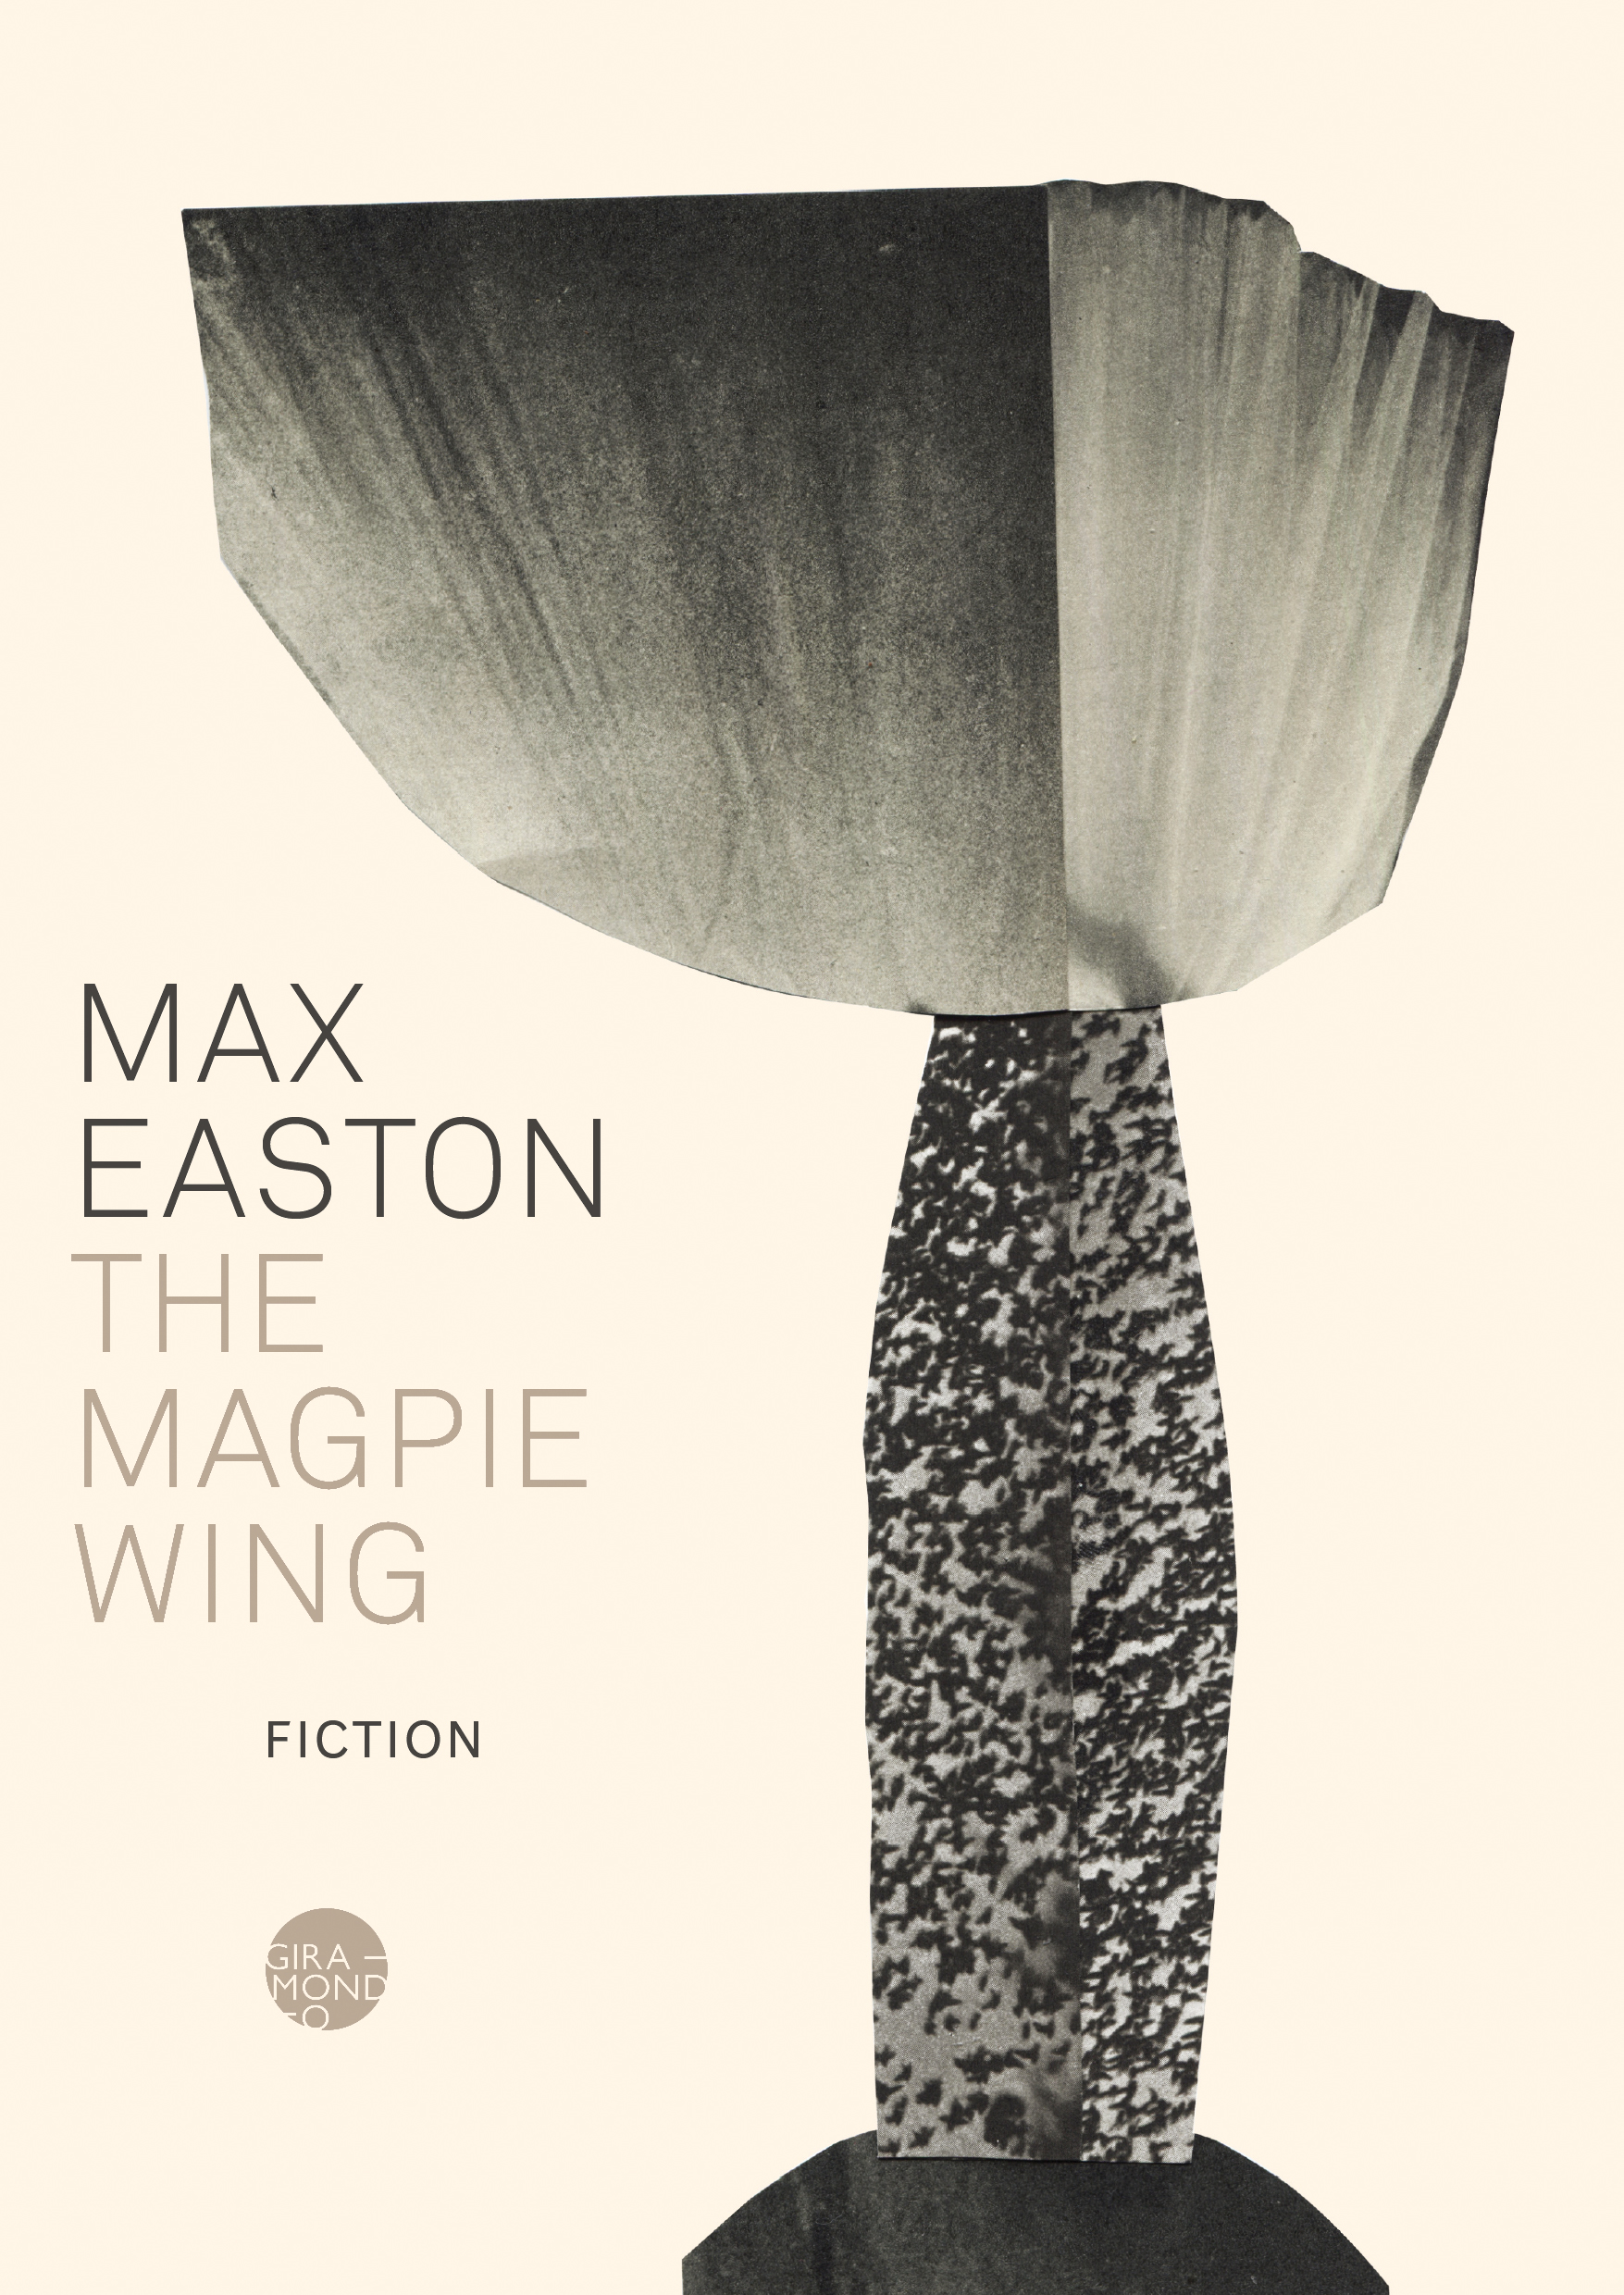 The Magpie Wing by Max Easton